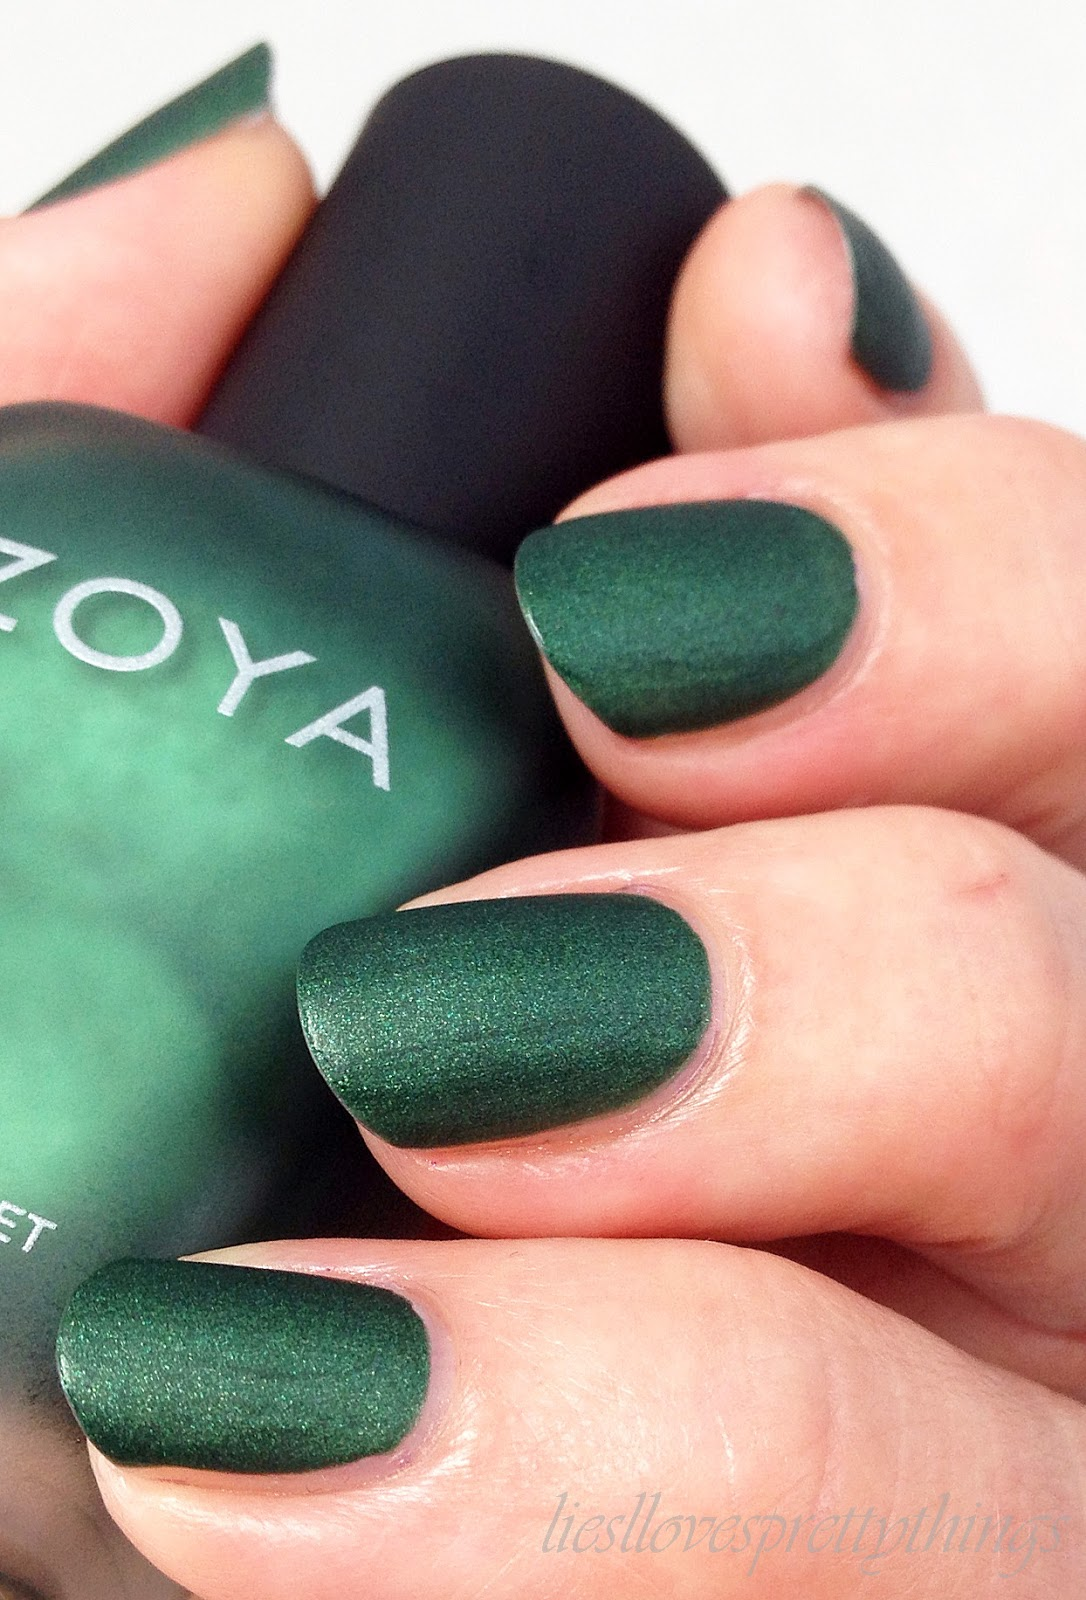 Zoya Veruschka, Matte Velvet Collection swatch and review